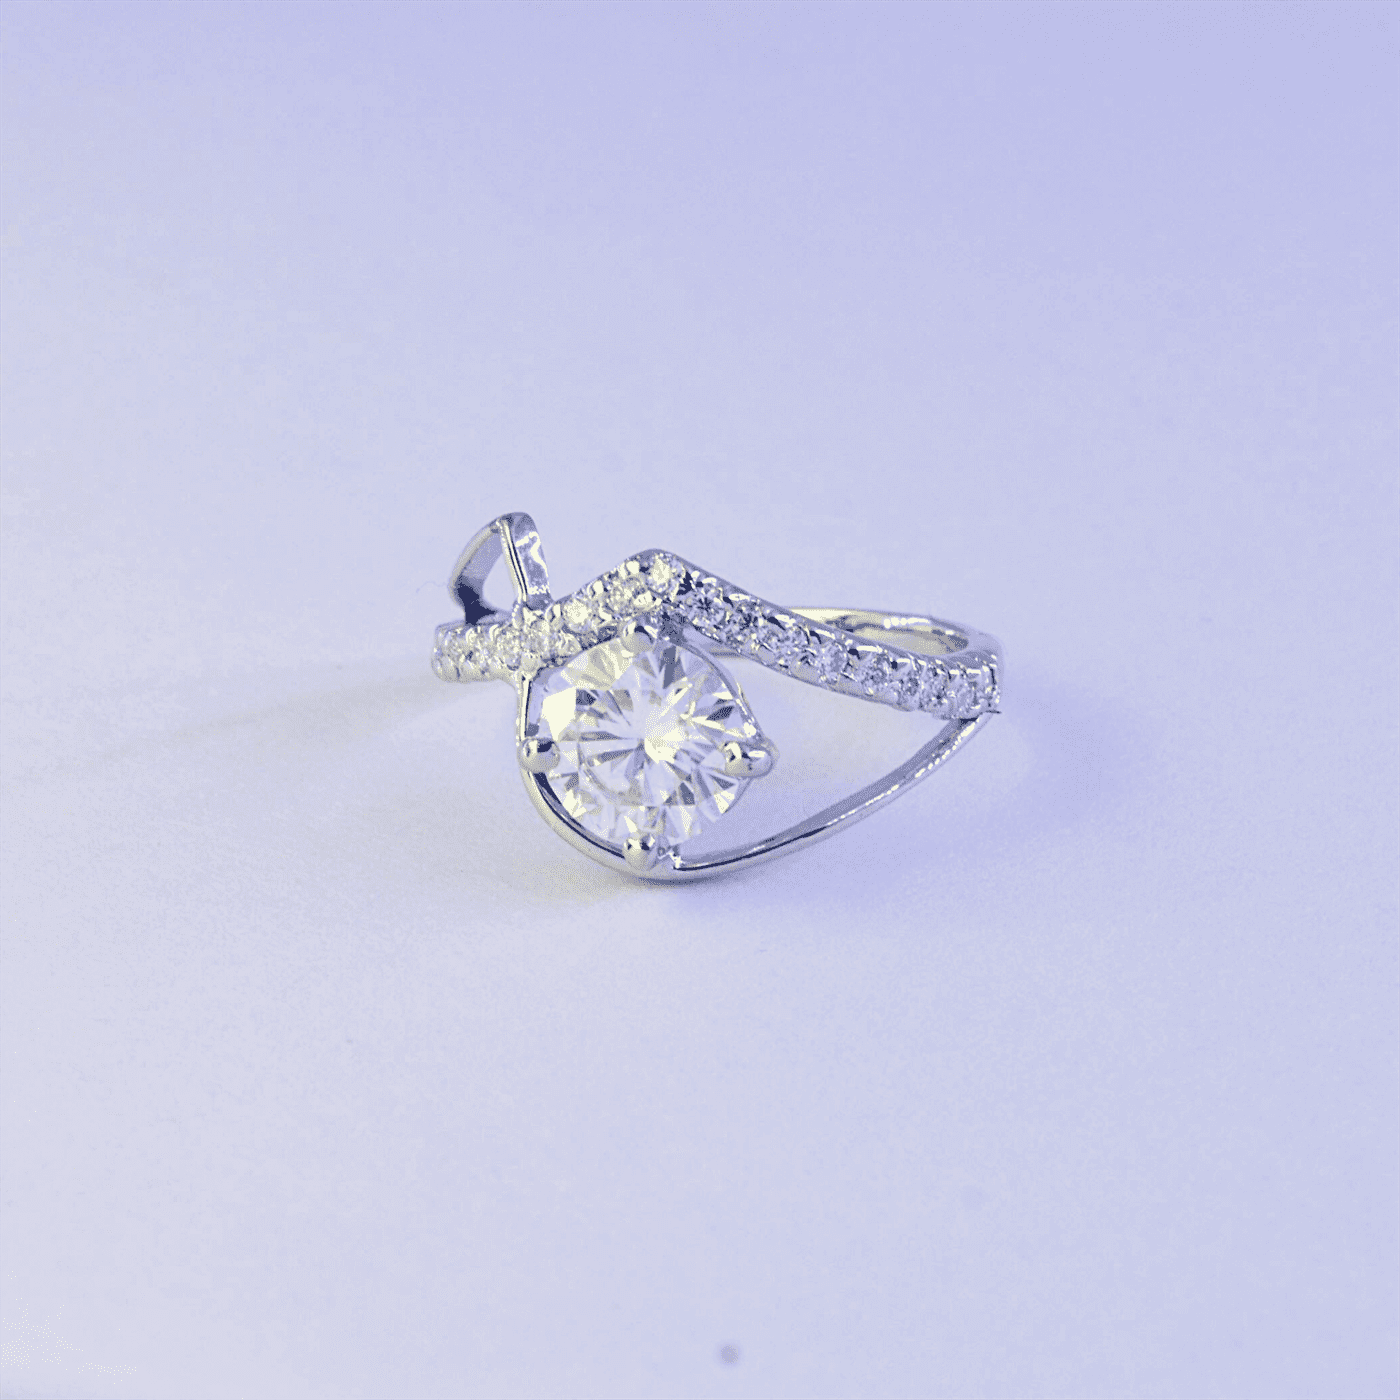 Brilliant Cut Moissanite Annivarsary Ring